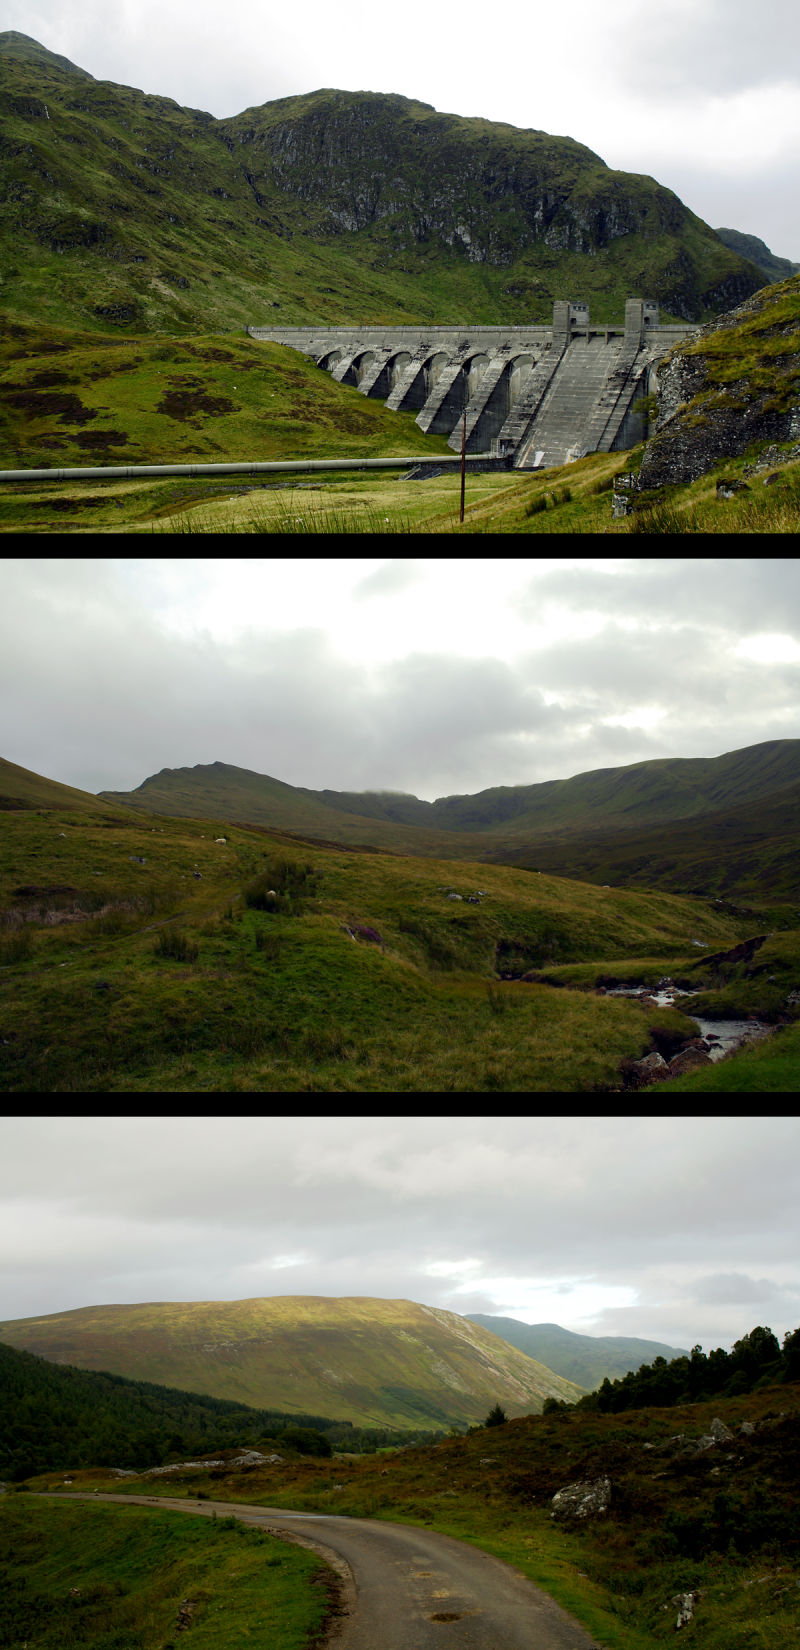 Montage of the Ben Lawers range and hydrodam